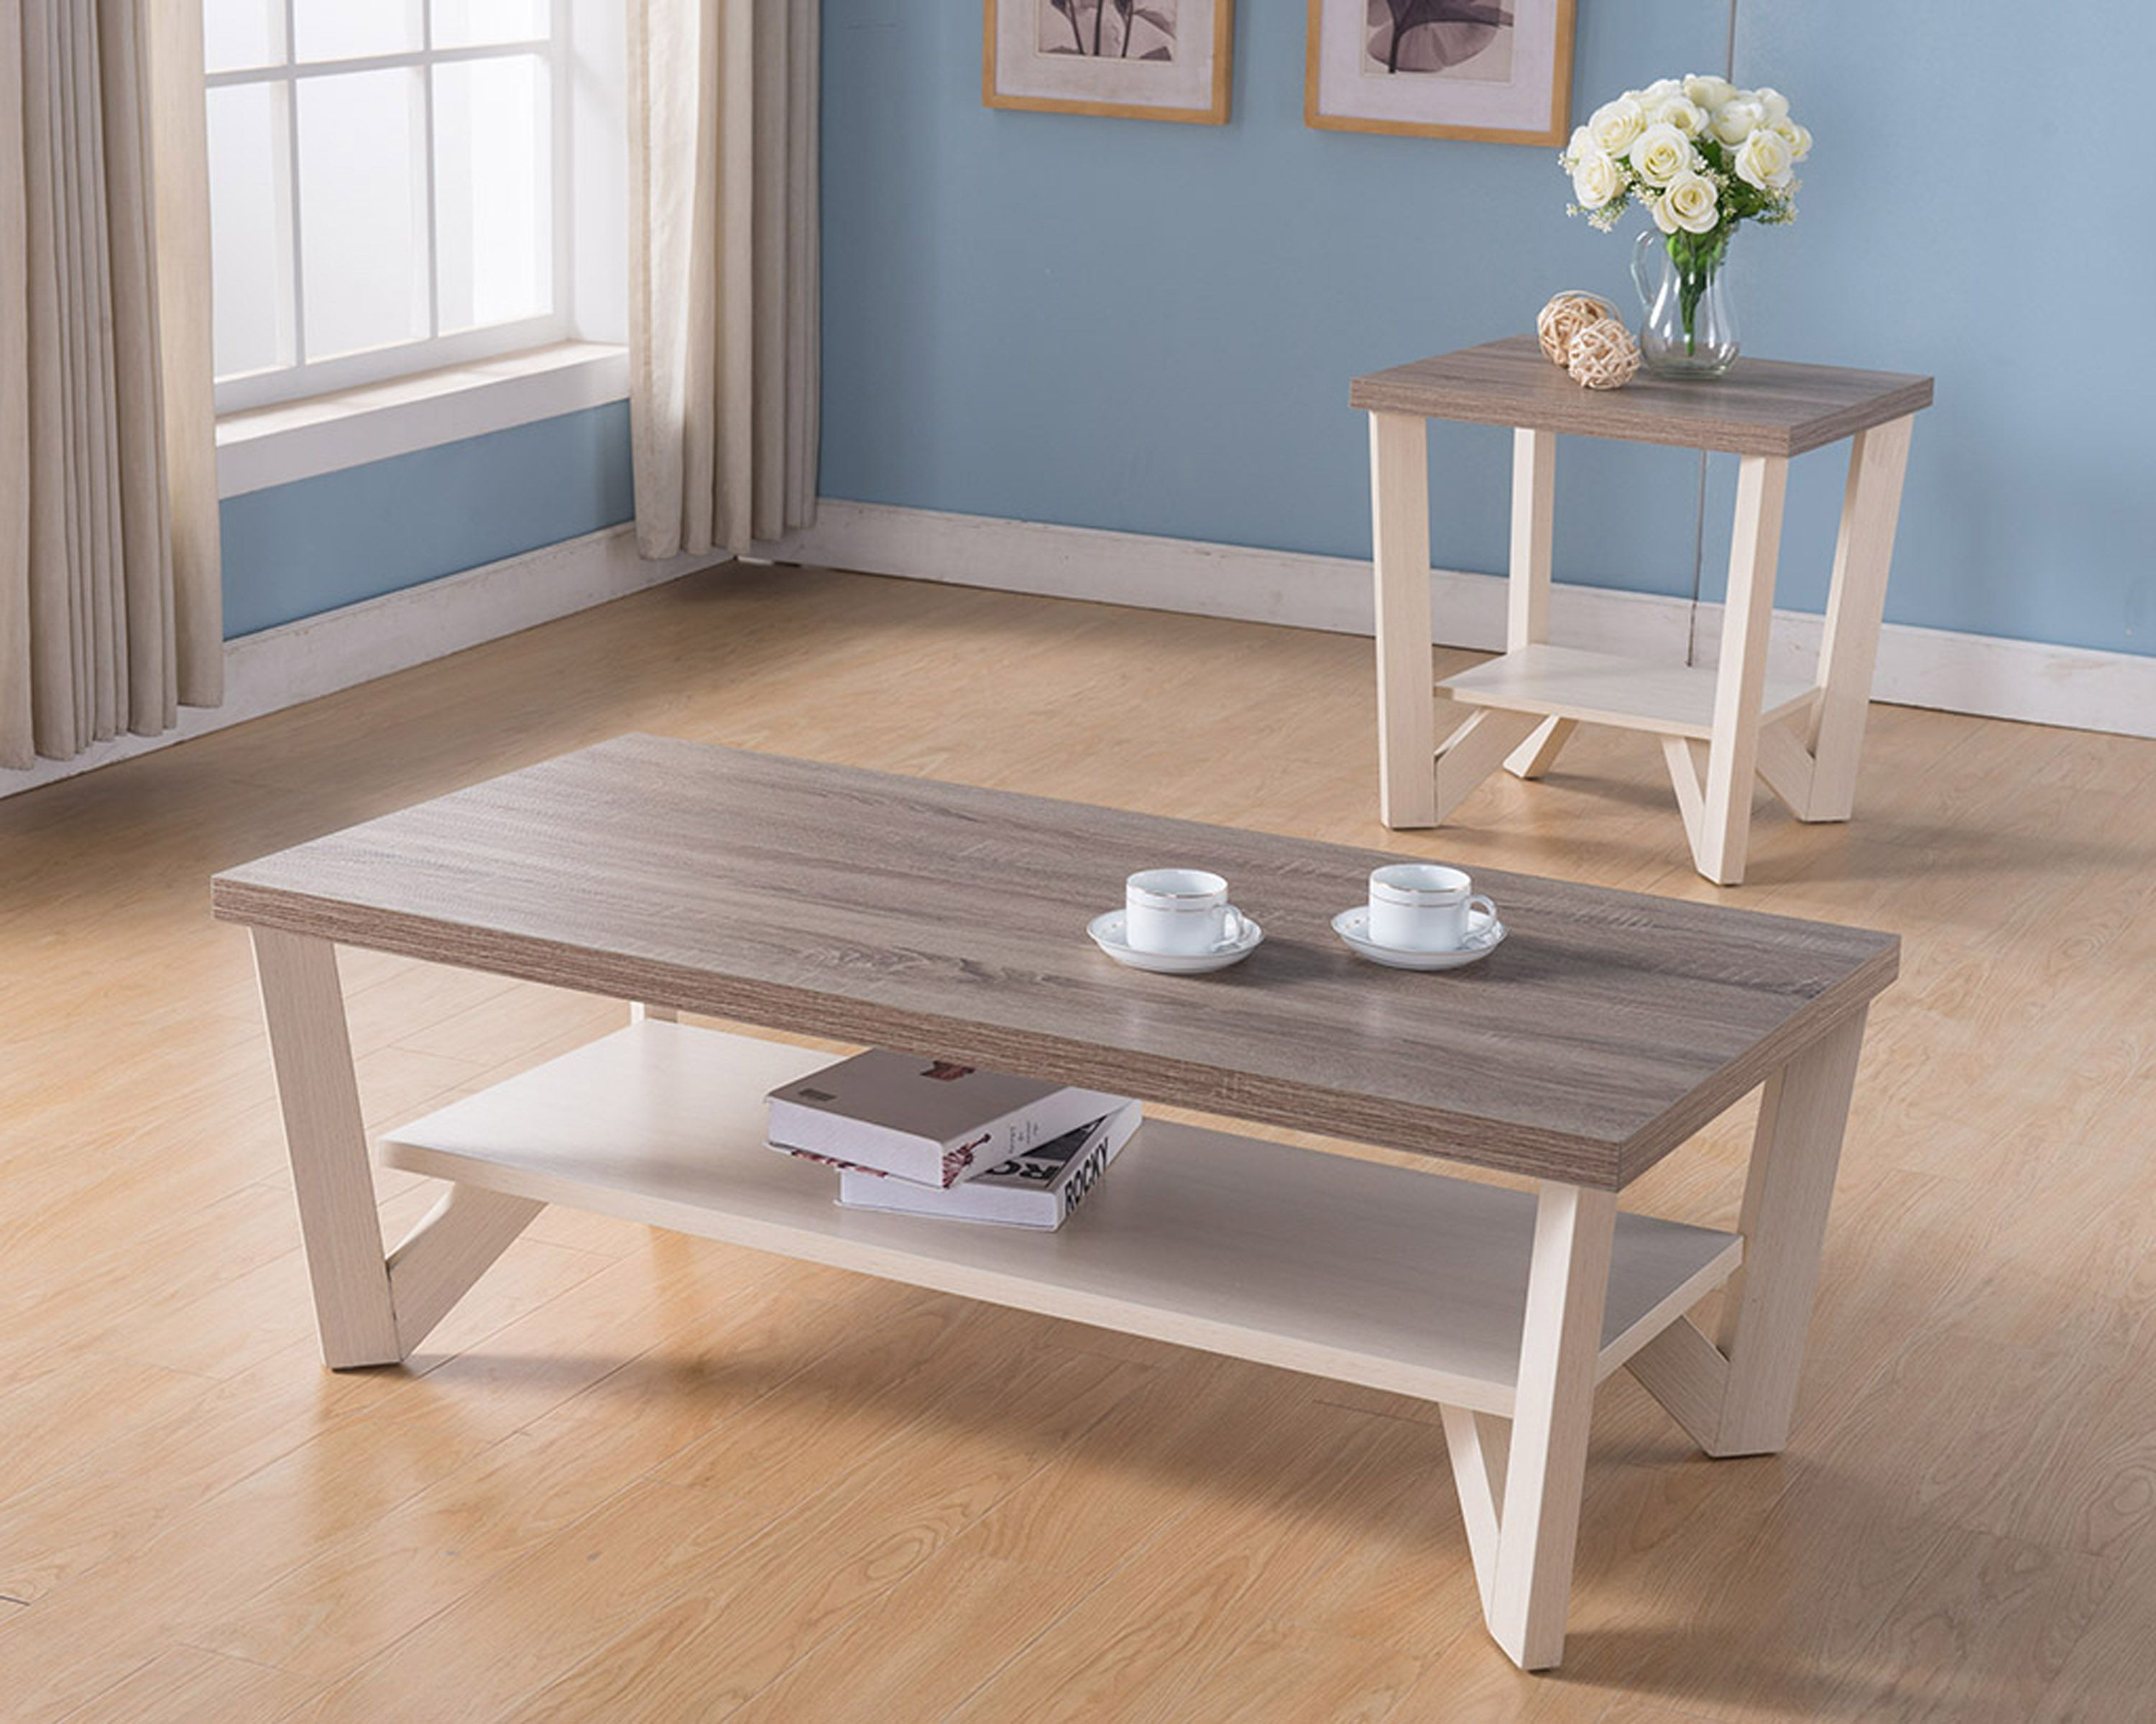 161602CT ET Smart Home Ivory U0026 Dark Taupe Coffee Table And End Table Set  Features An All Around Two Toned Finish In Ivory U0026 Dark Taupe.